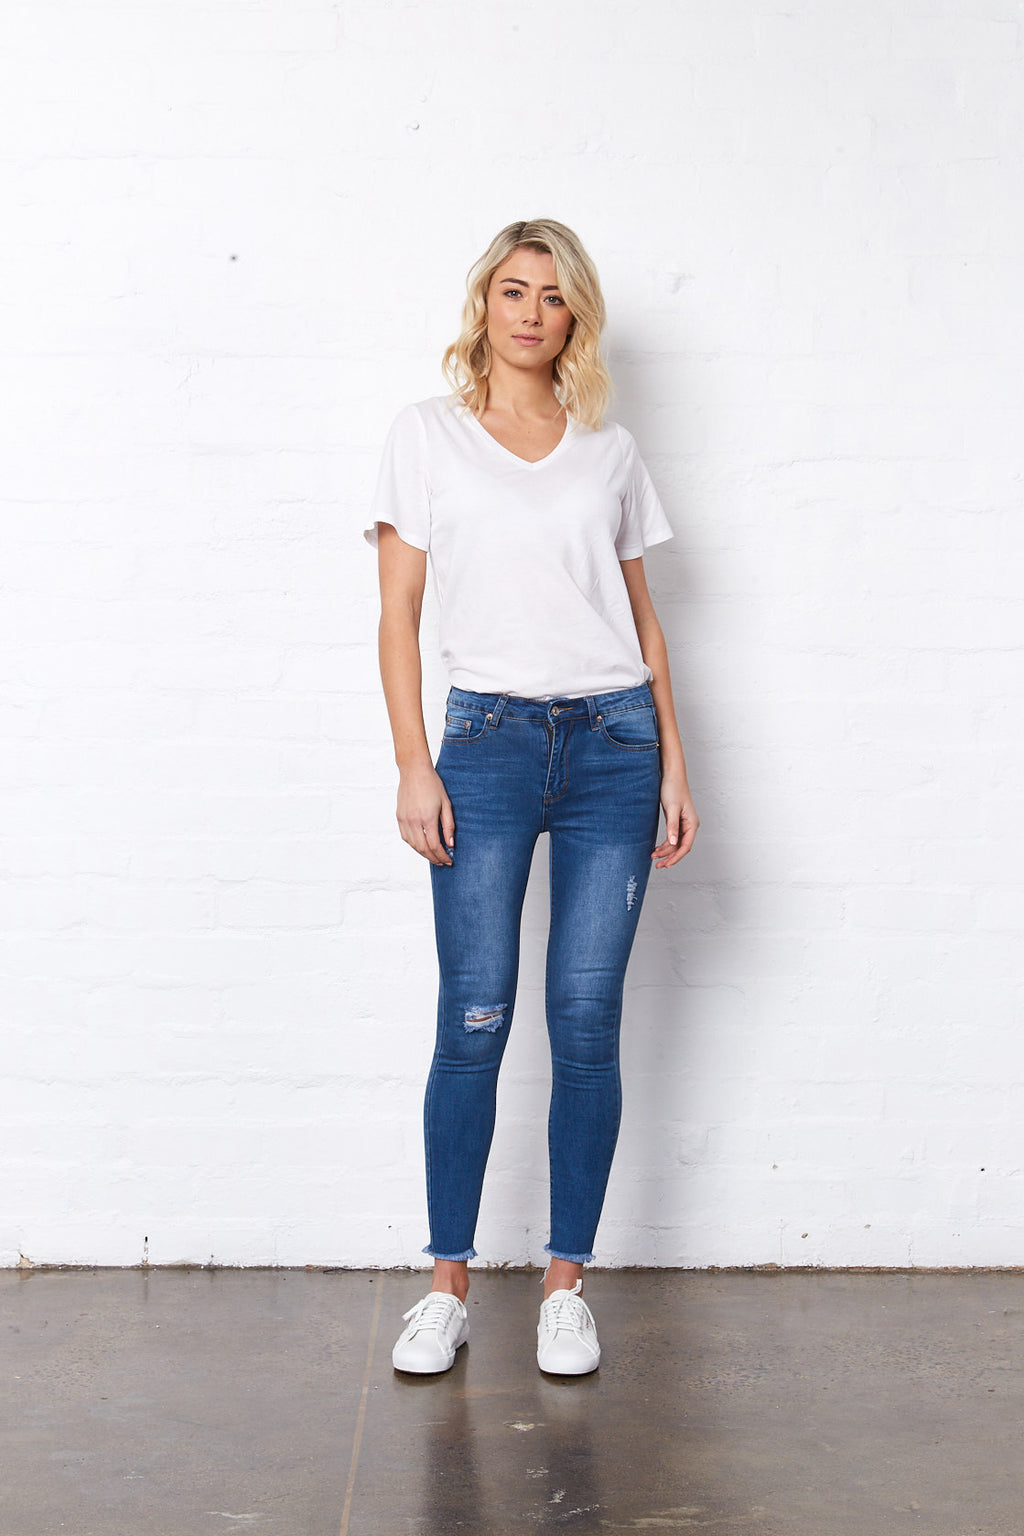 Lucia Jeans by Saint Rose. Blue with rips.